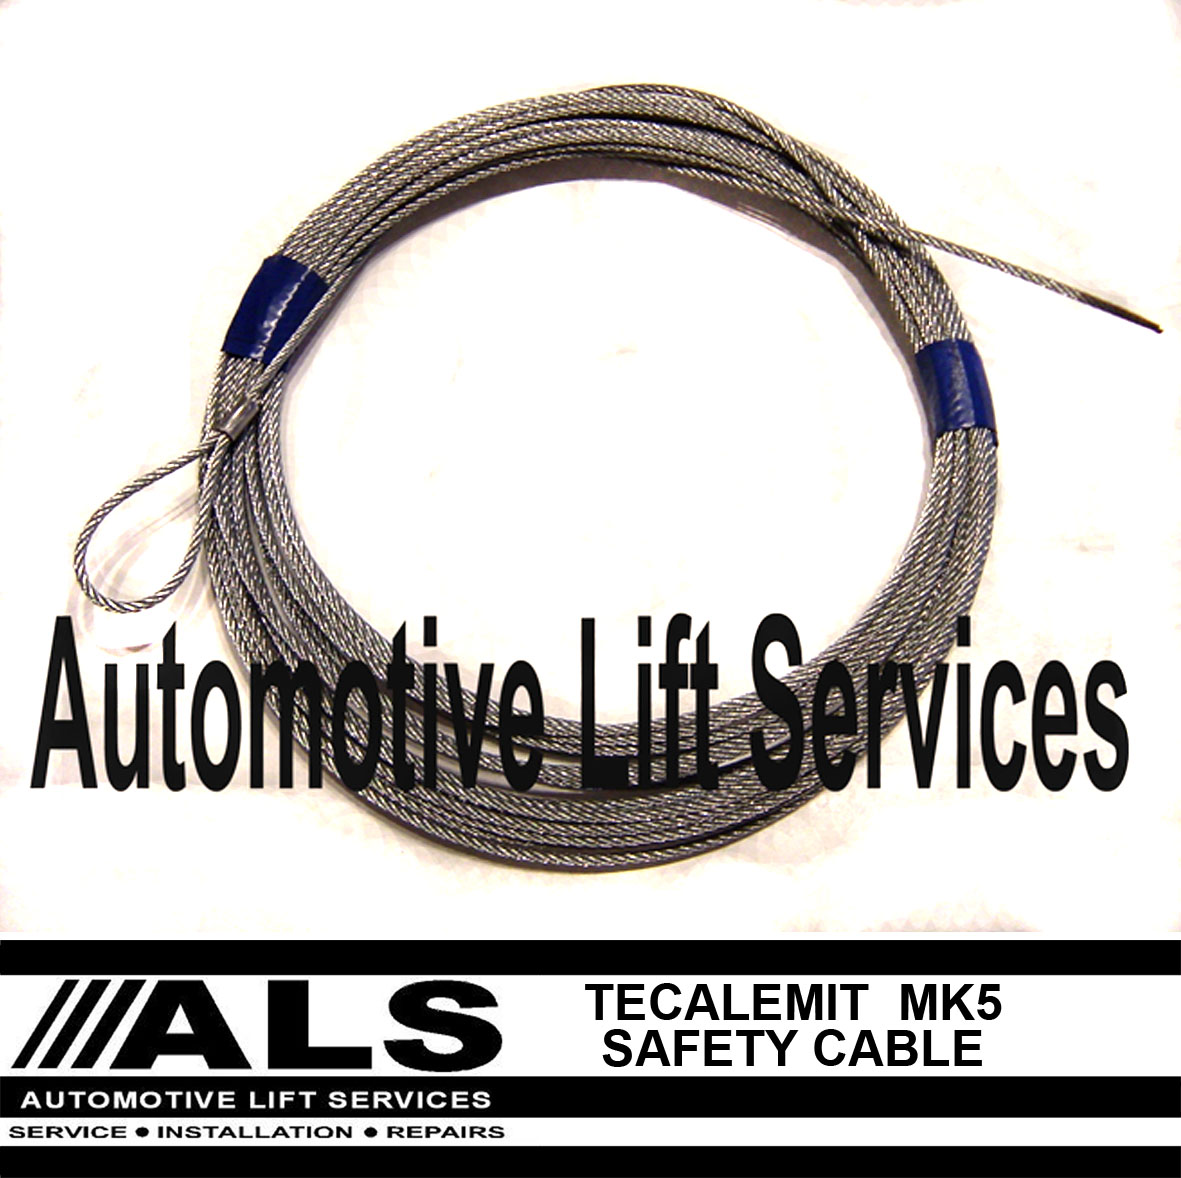 Tecalemit MK5 safety cable